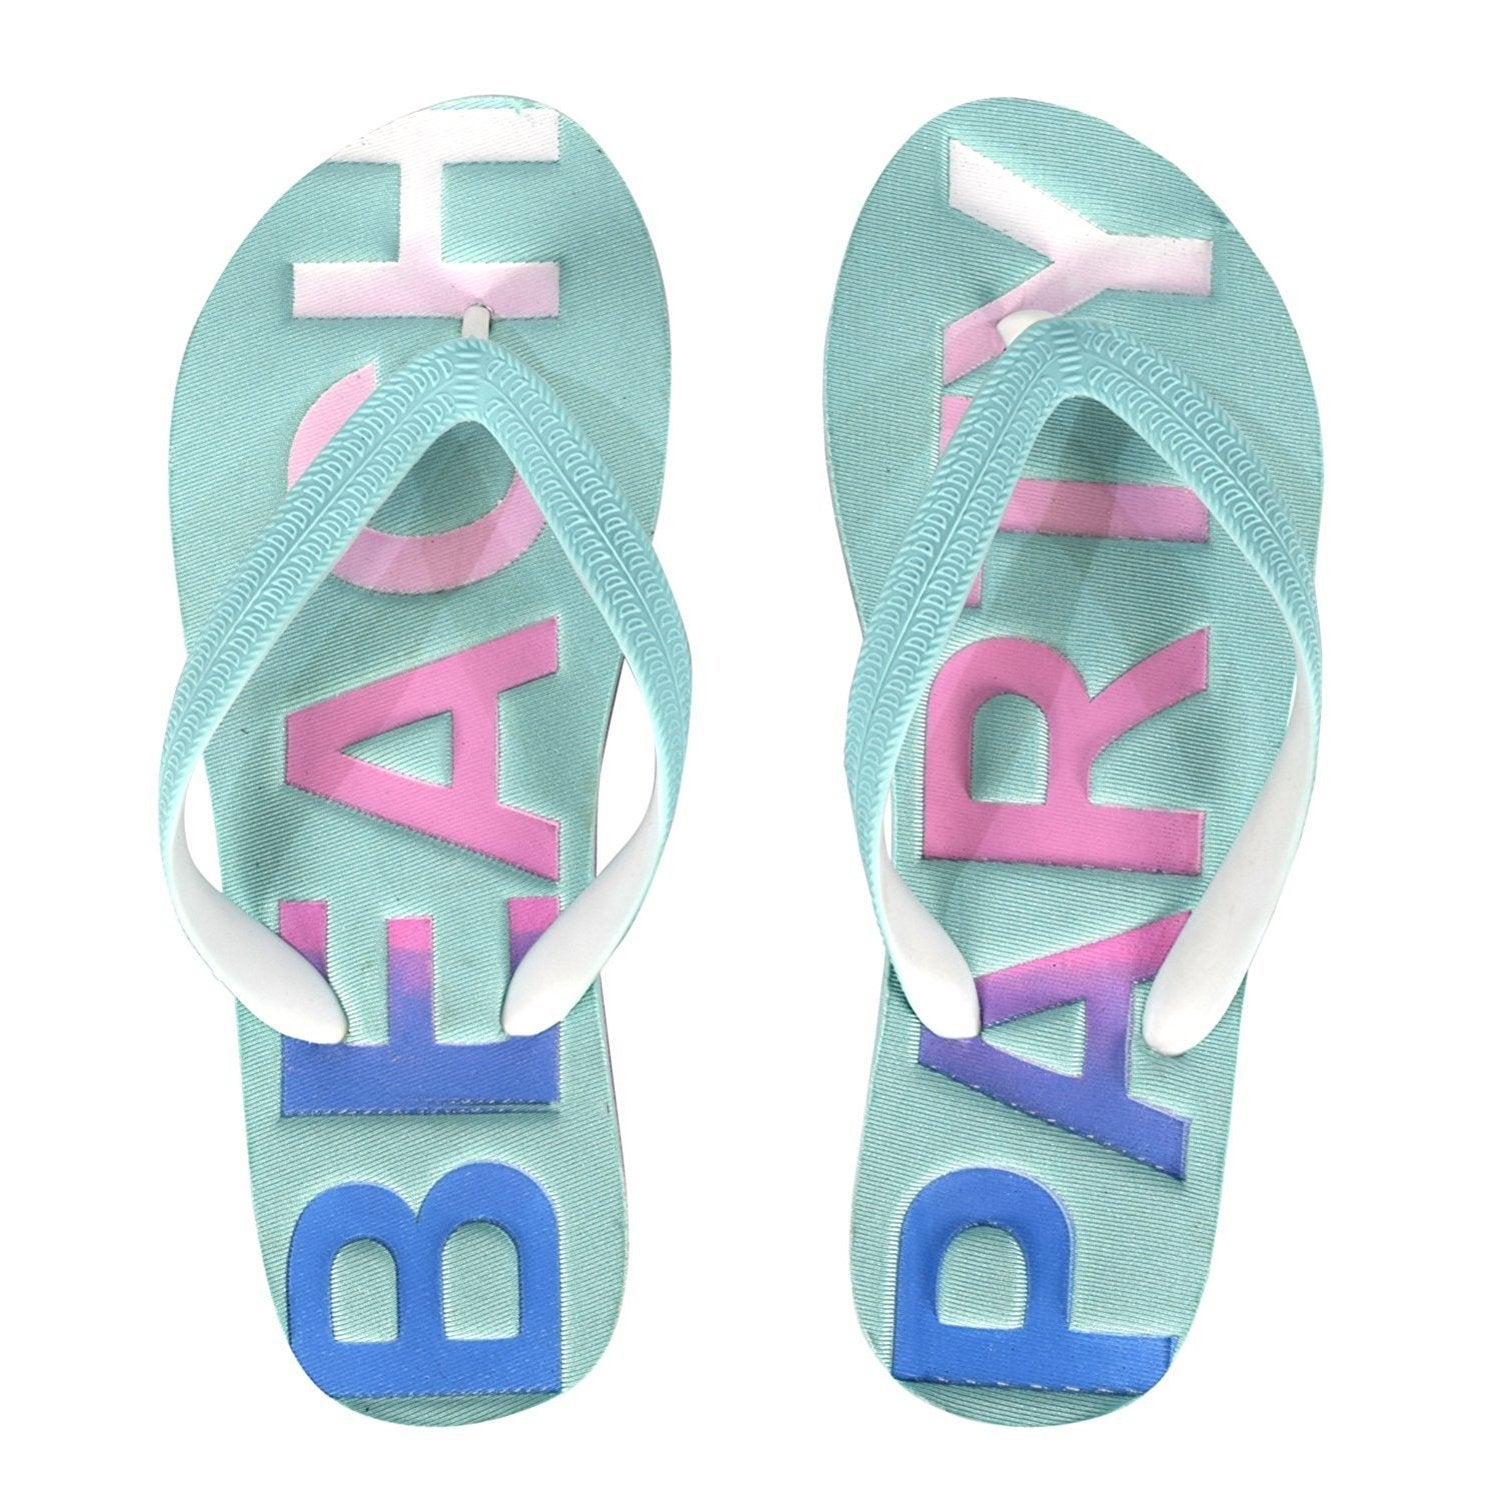 6e955e34f Shop Peach Couture Women s Summer Beach Embossed Flip Flops Casual Strappy  Slip ons - Free Shipping On Orders Over  45 - Overstock - 16849157